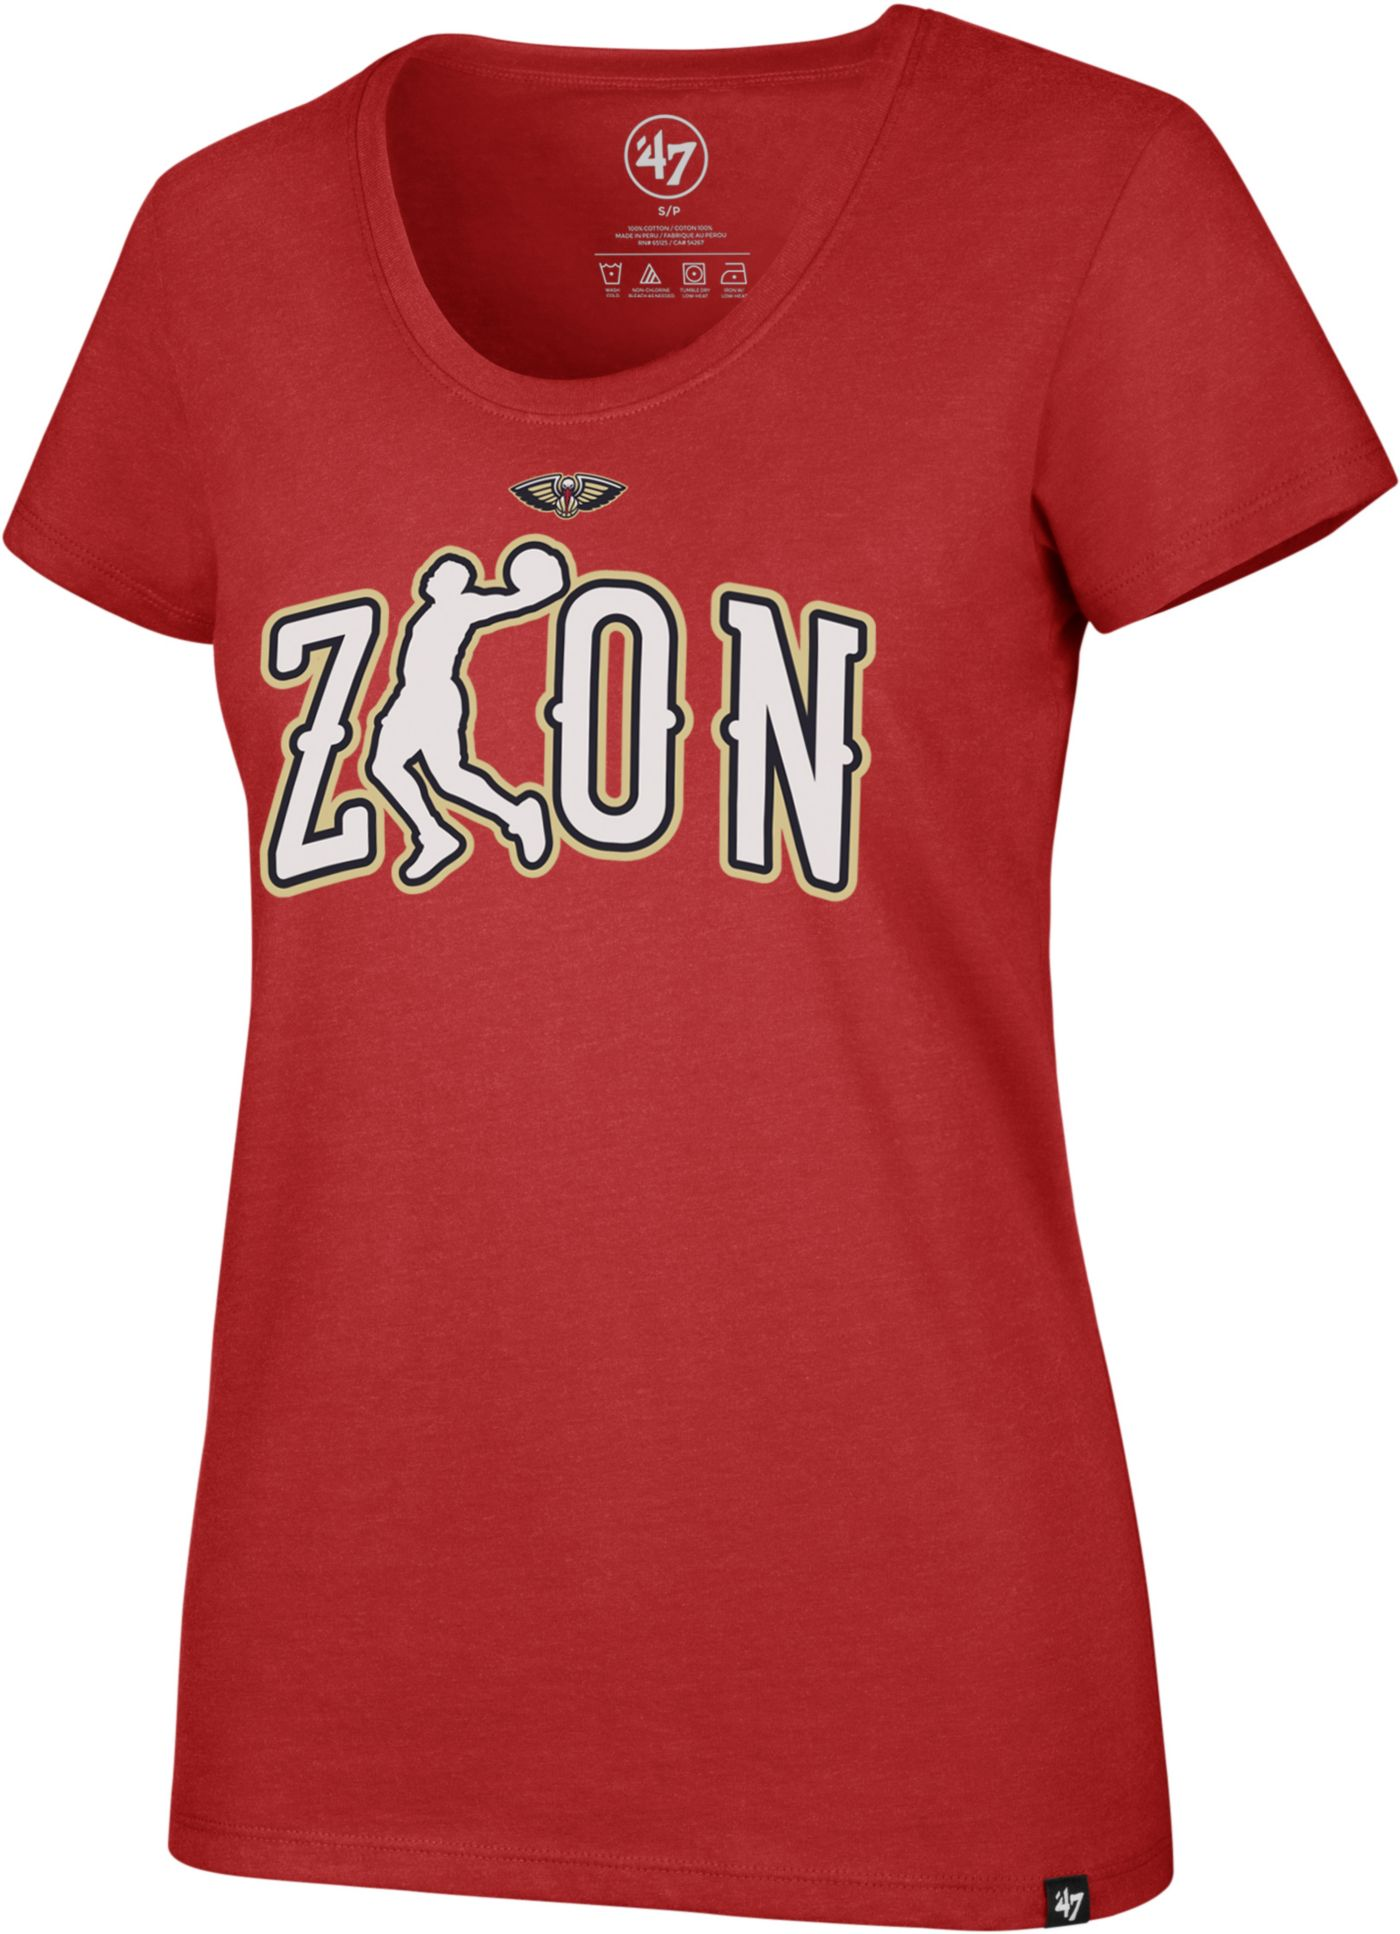 '47 Women's New Orleans Pelicans Zion Williamson Red Scoop Neck T-Shirt